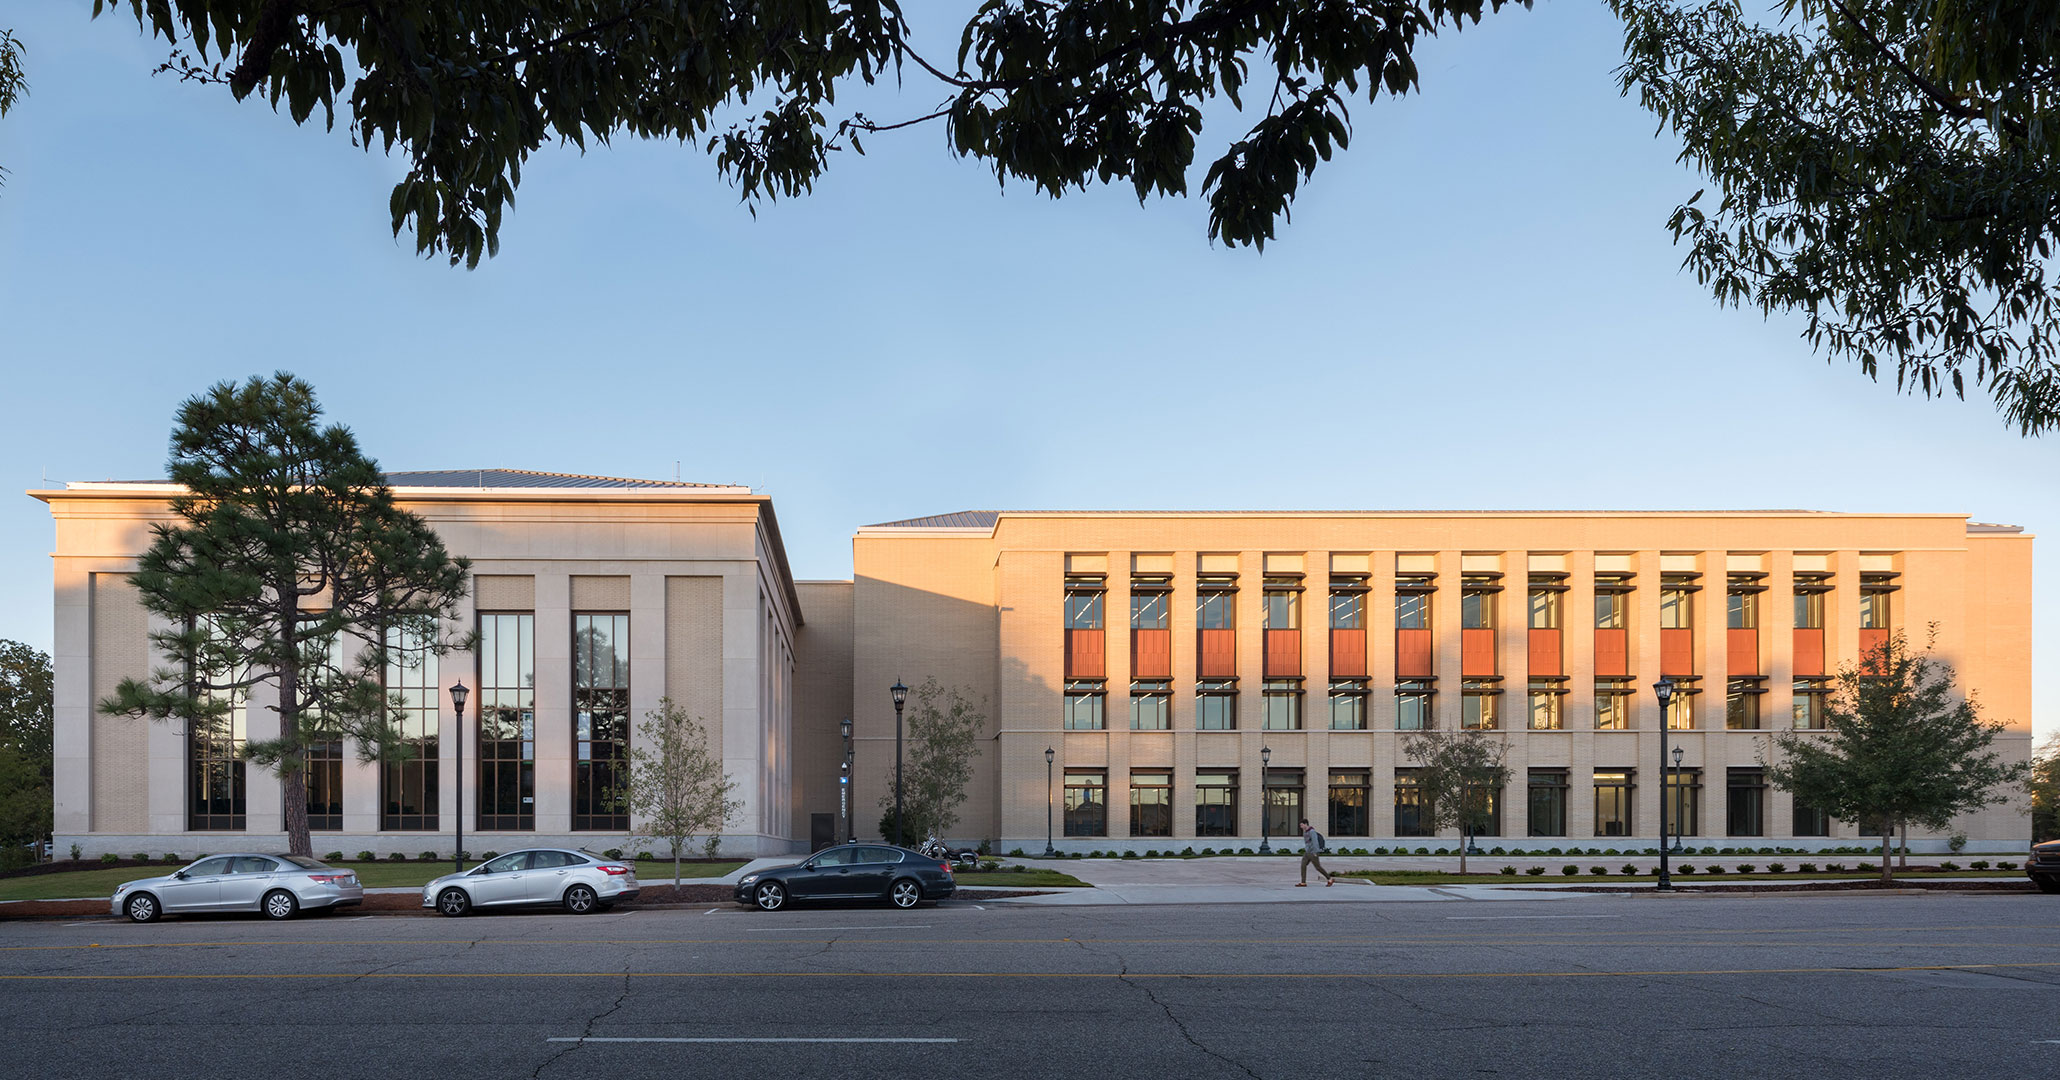 UofSC worked with Boudreaux architects to design the new prestigious Law School.